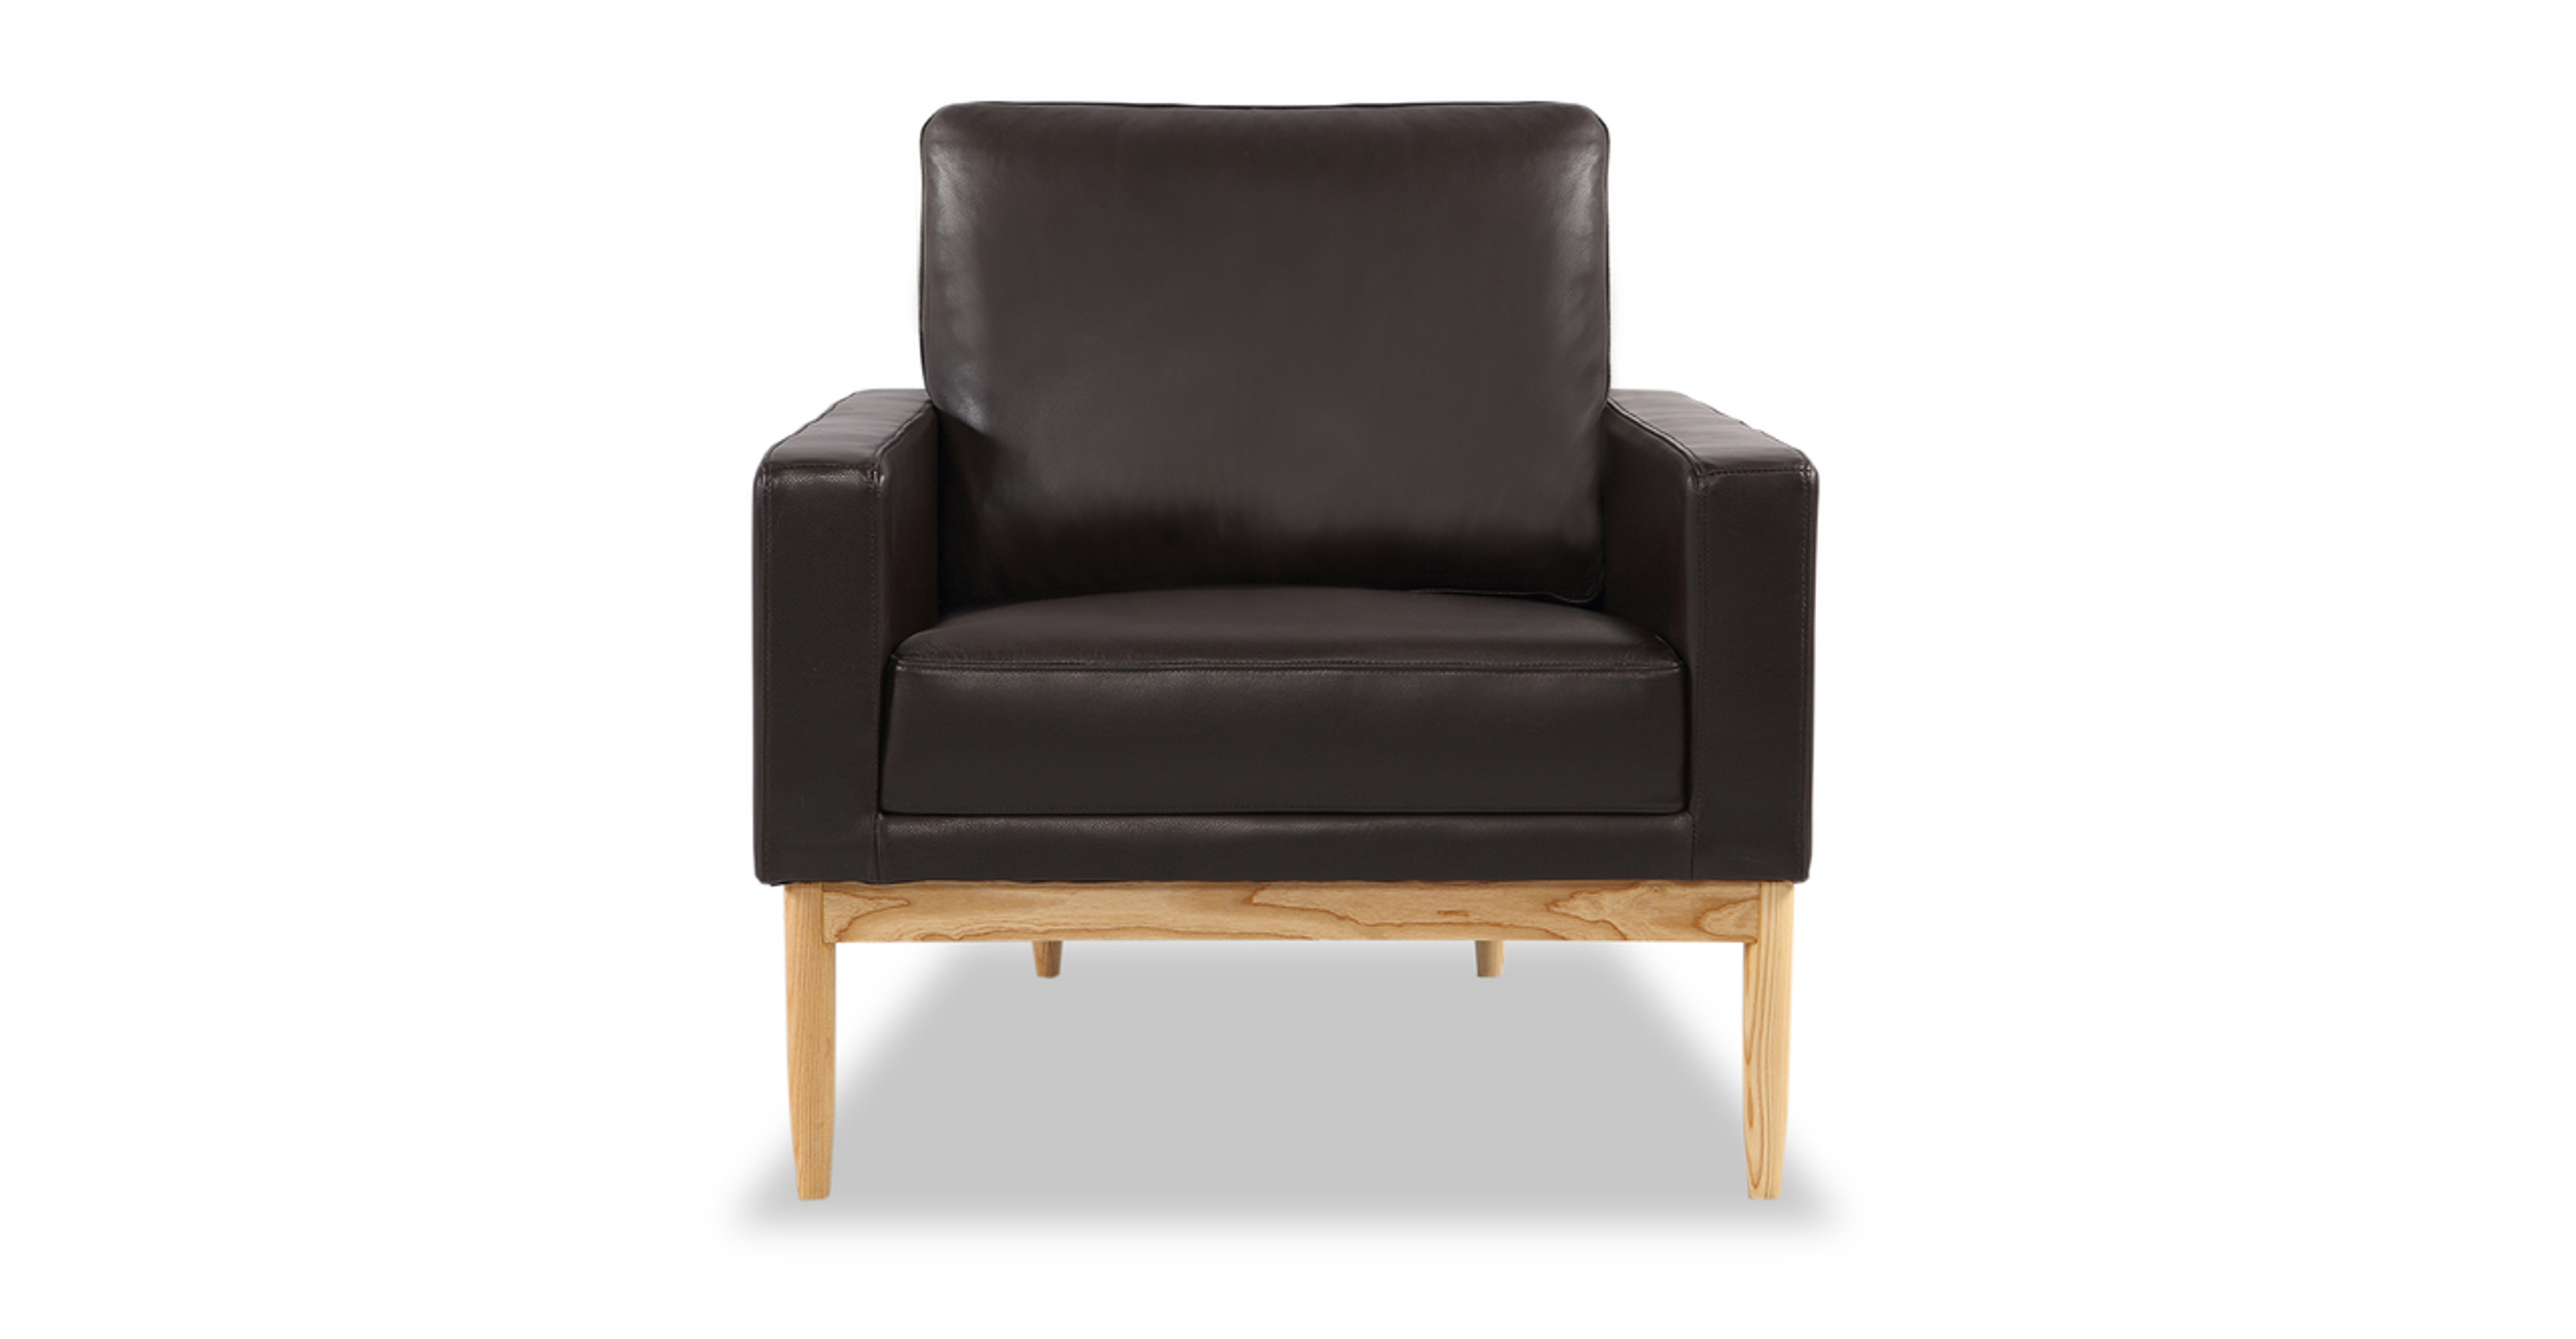 Fabulous Stilt Danish Mod Chair Brown Aniline Leather Ash Caraccident5 Cool Chair Designs And Ideas Caraccident5Info